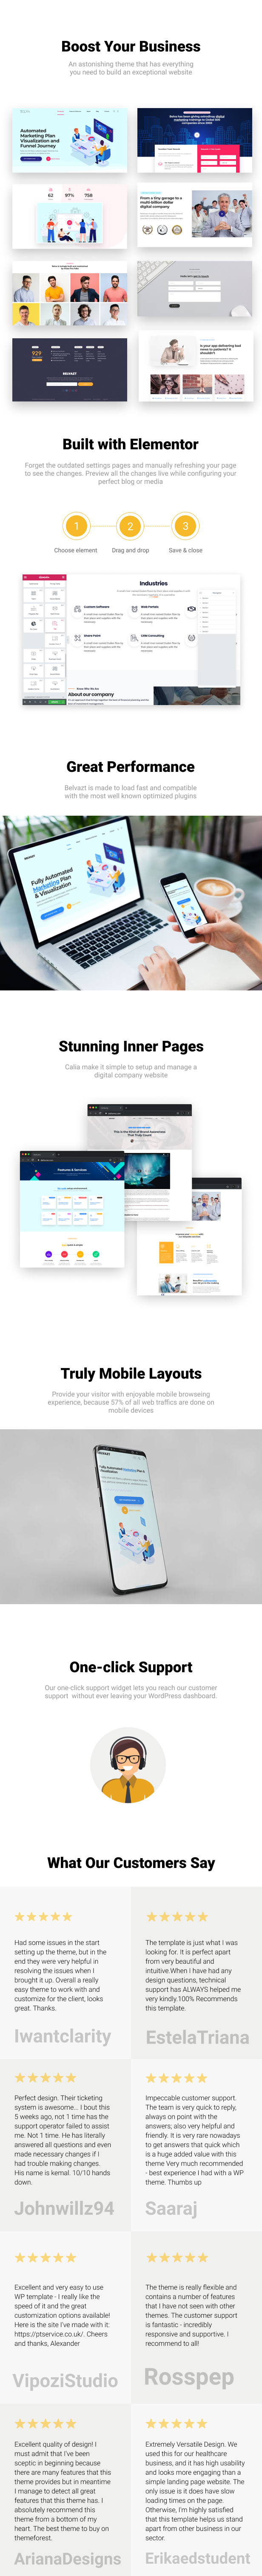 Belvazt - Marketing Agency and Software Company WordPress Theme - 1